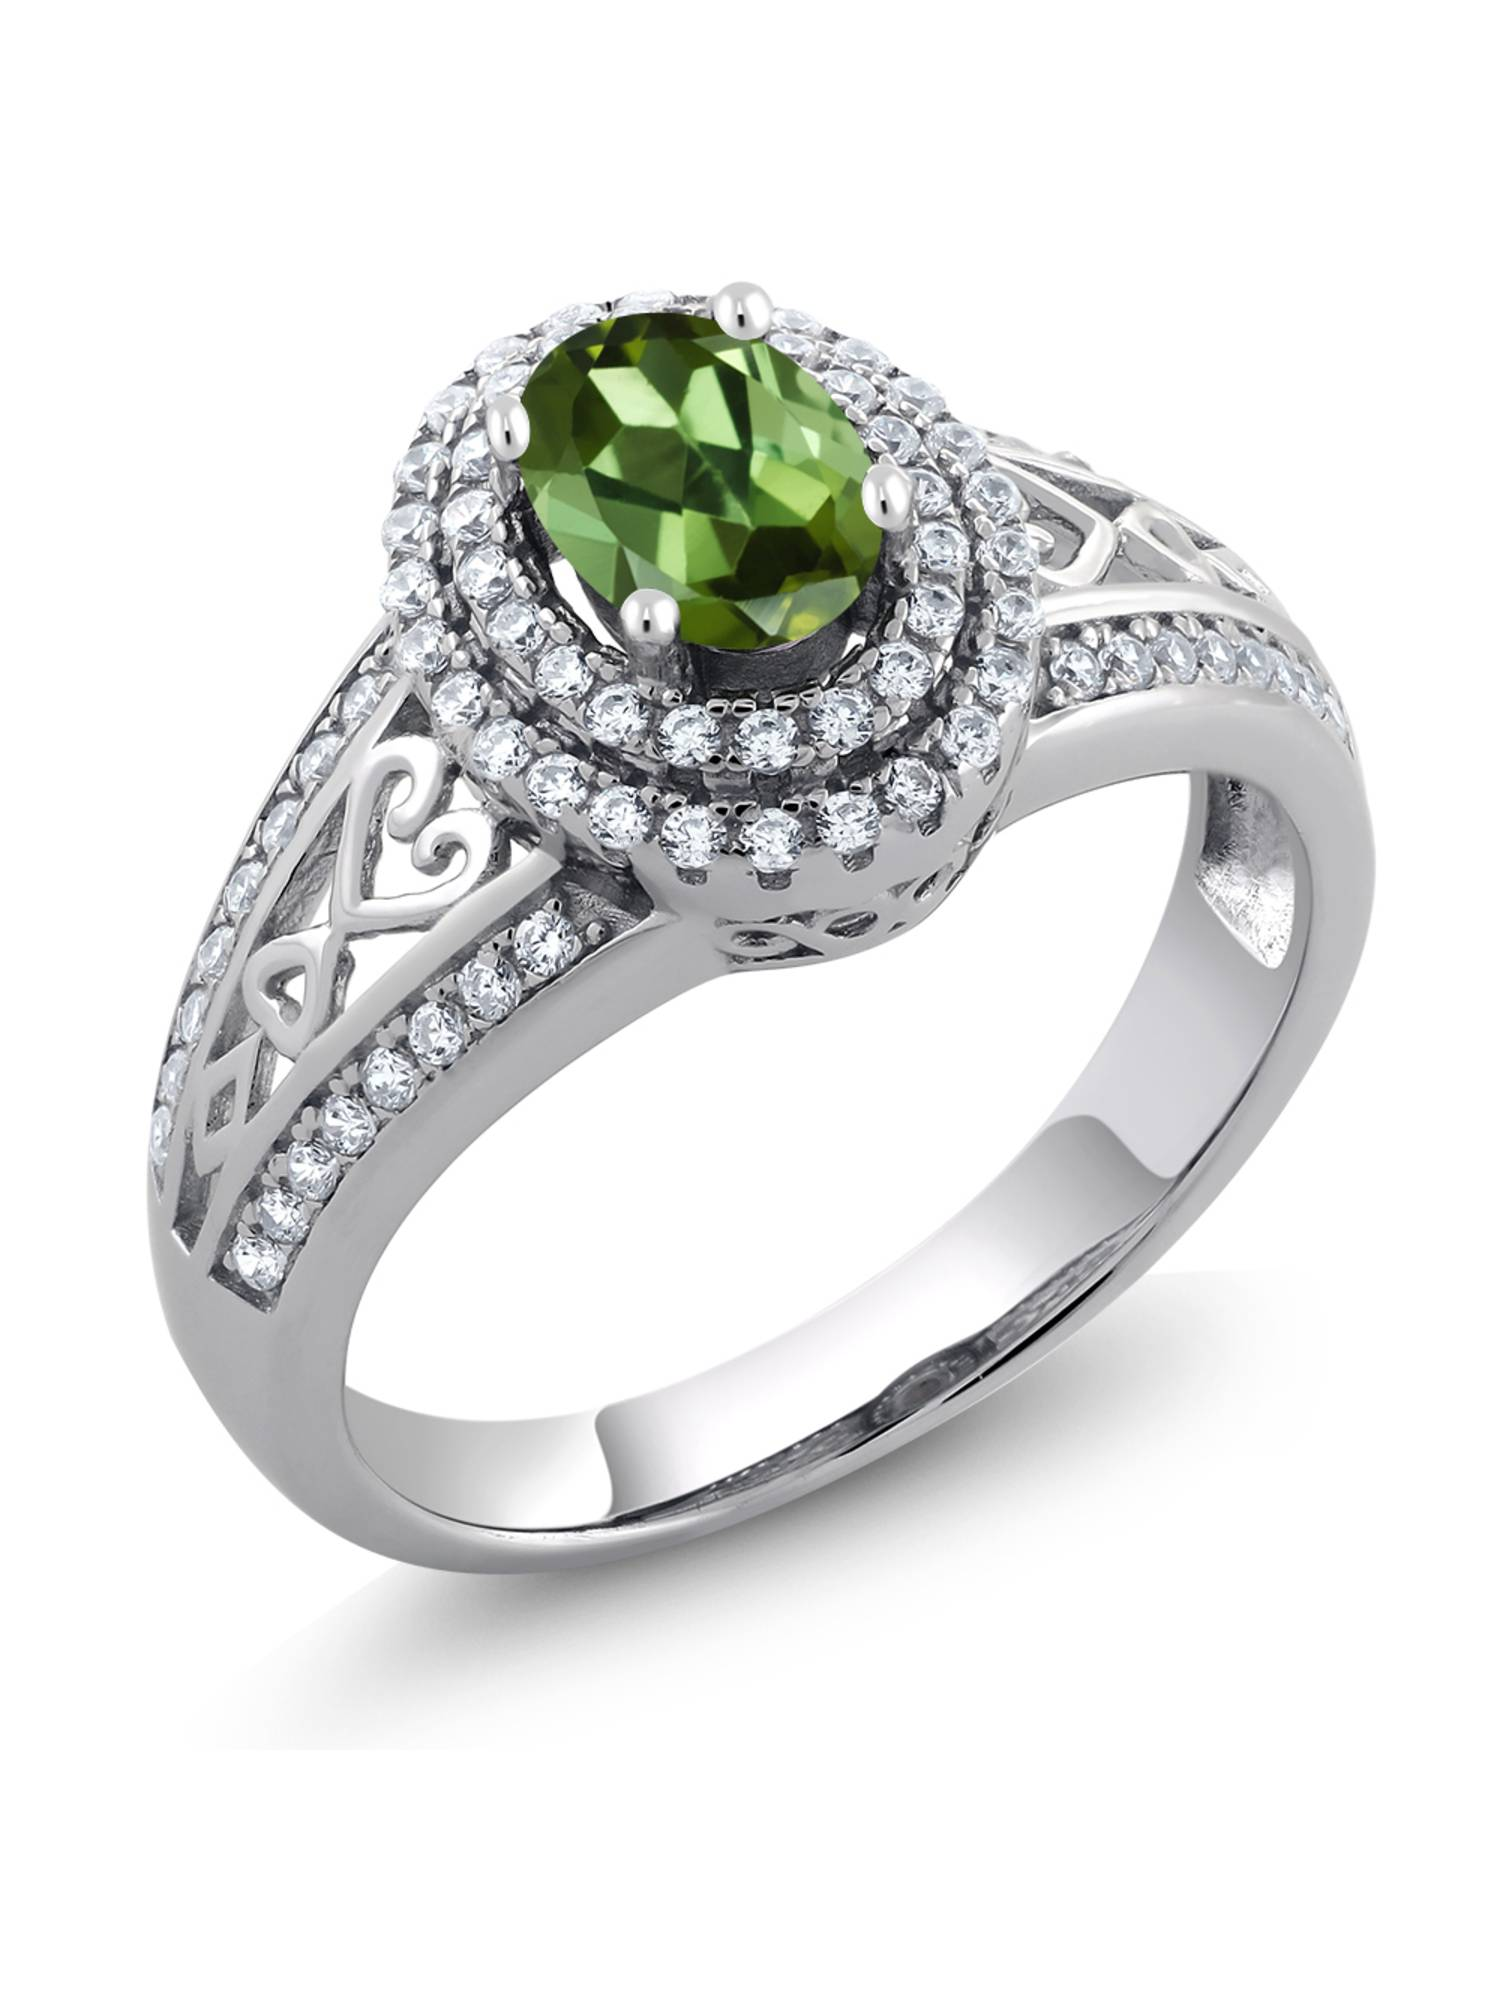 1.36 Ct Oval Green Tourmaline 925 Sterling Silver Ring by